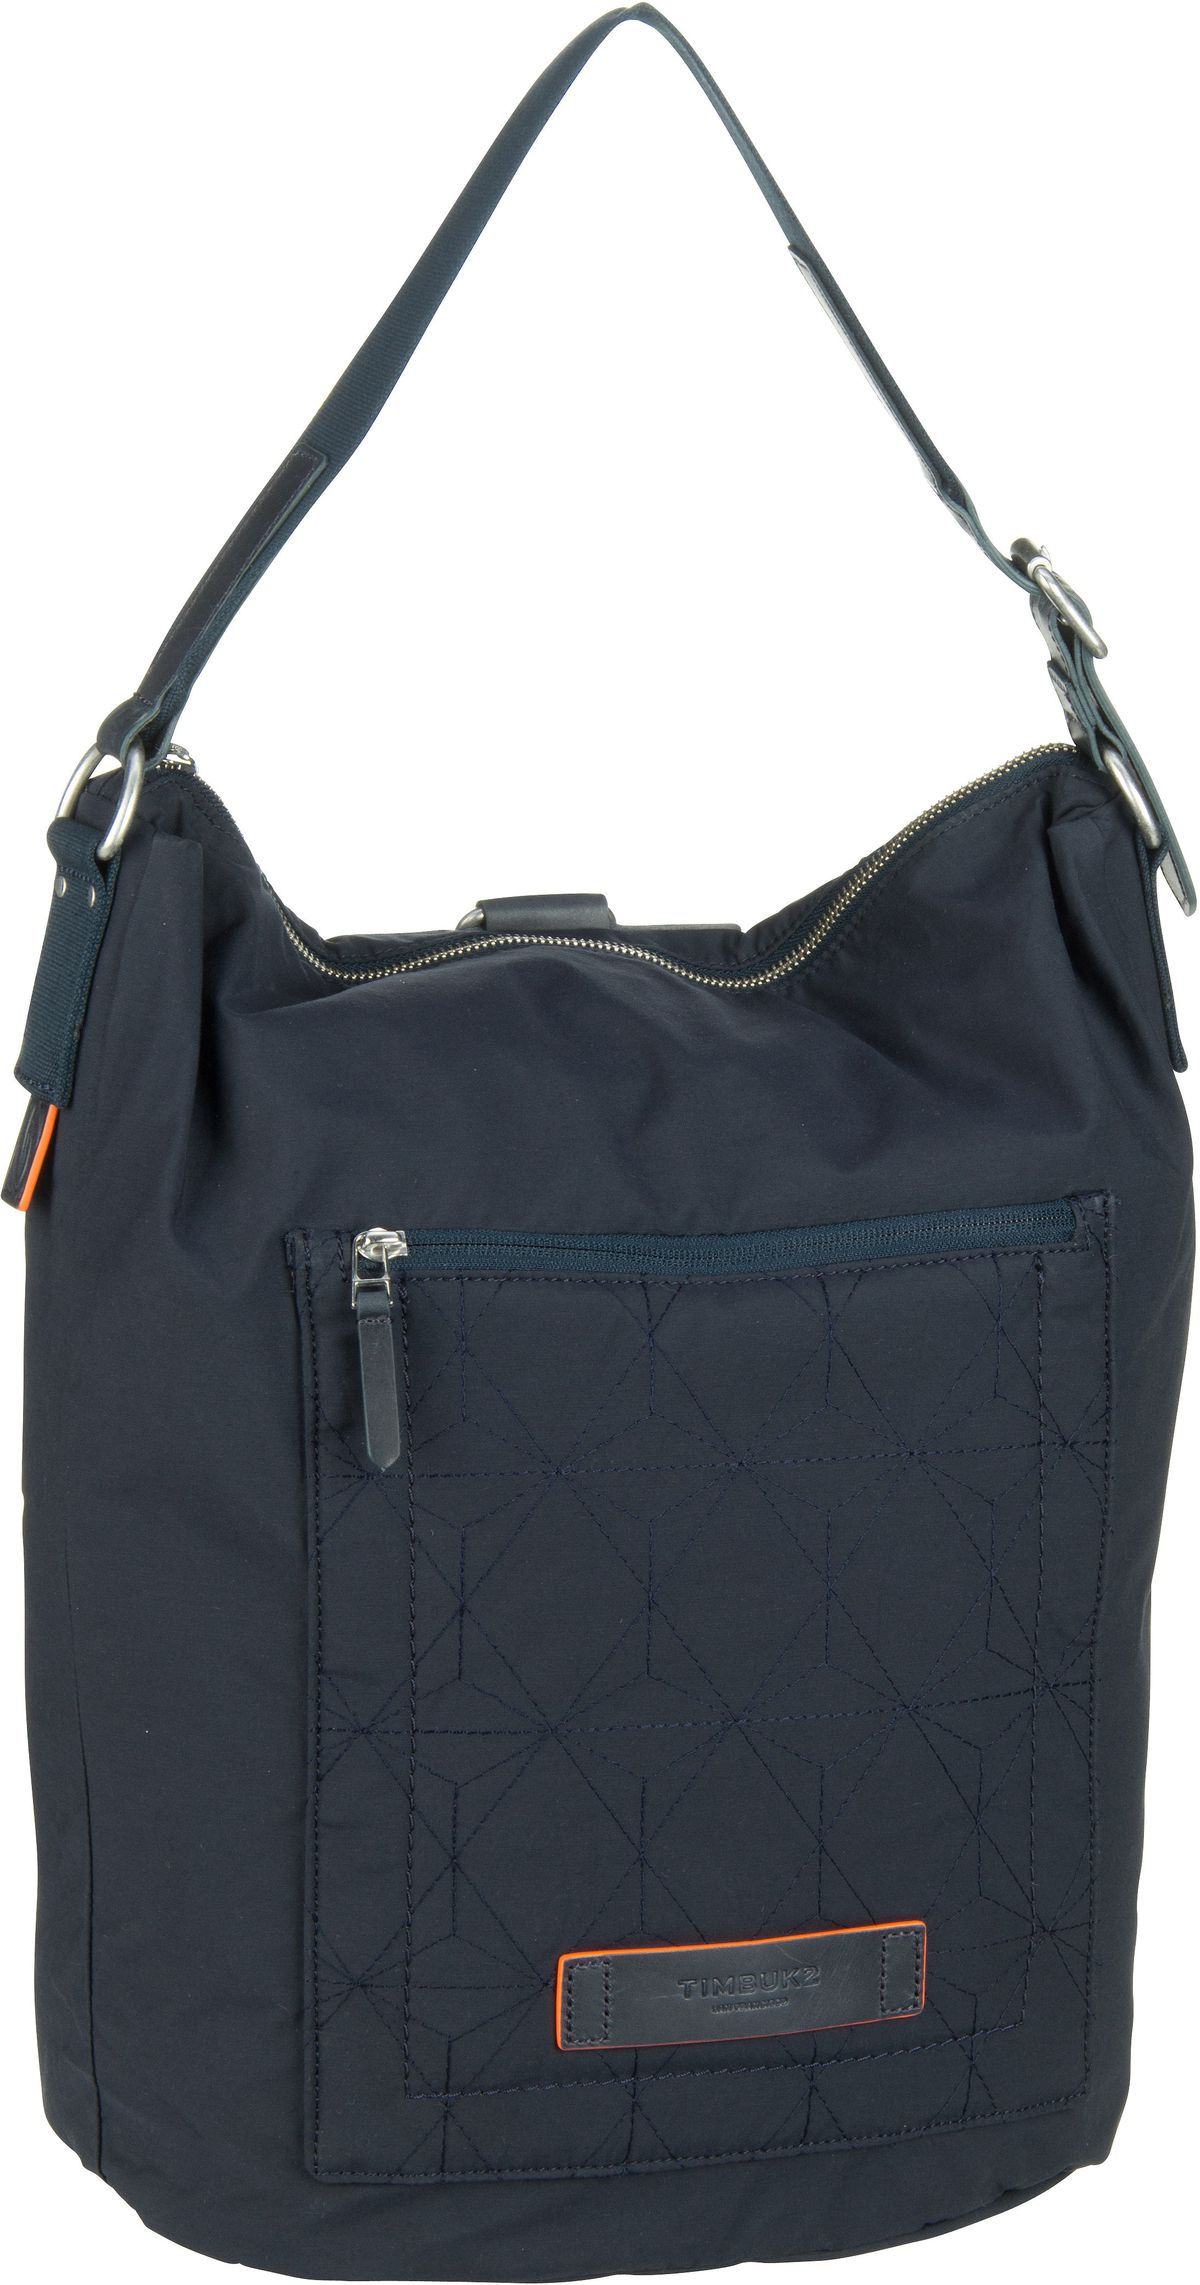 Handtasche Bucket Bag Nautical (20.4 Liter)